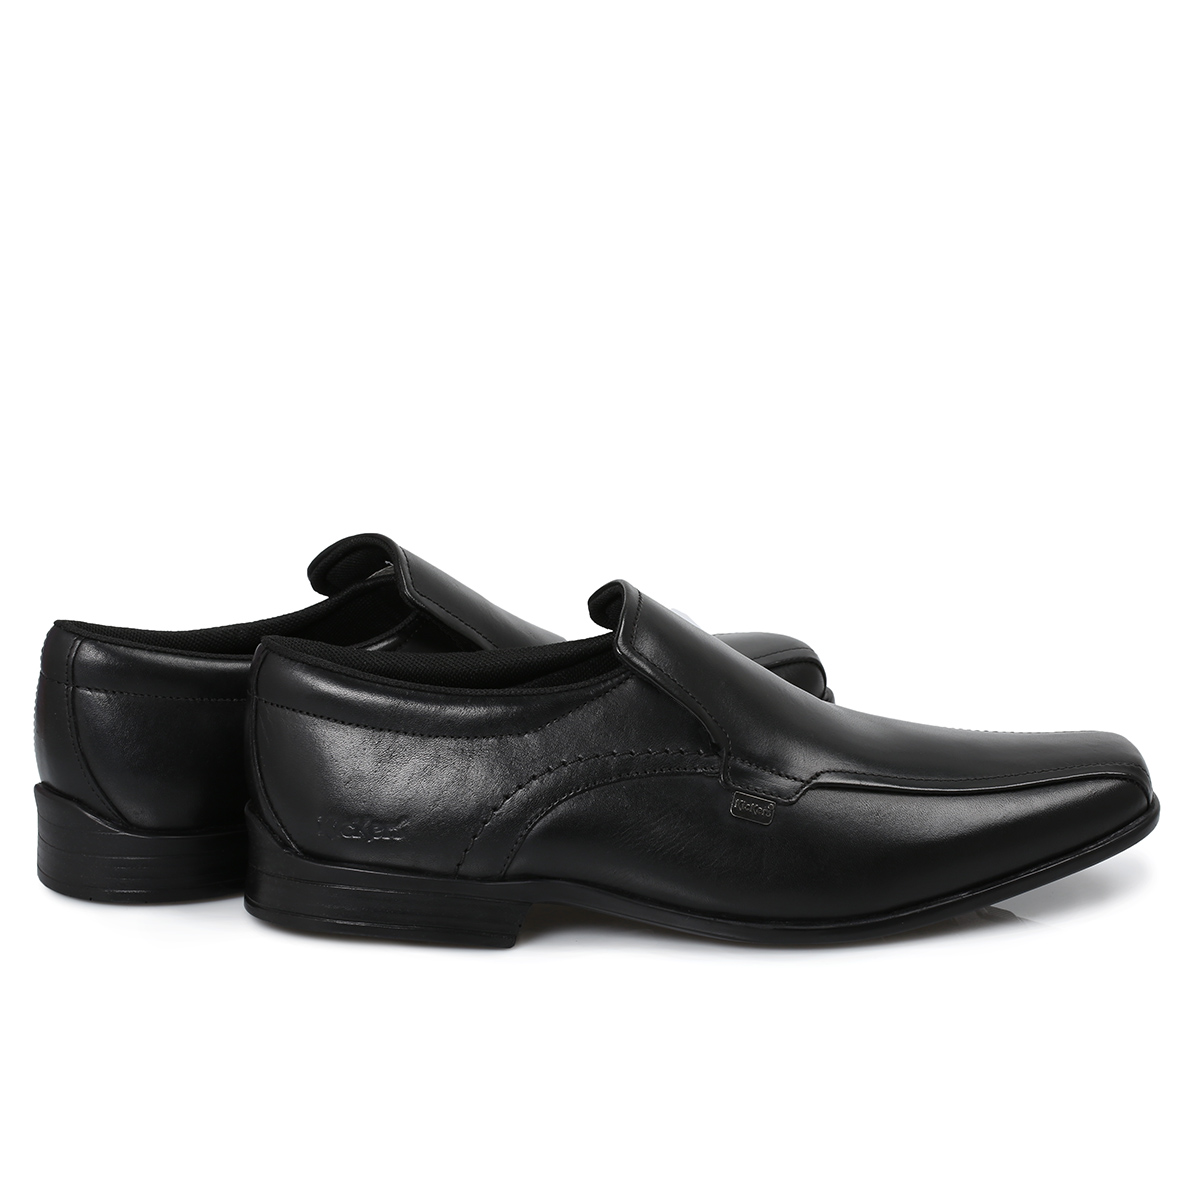 best suggestions for black slip on shoes